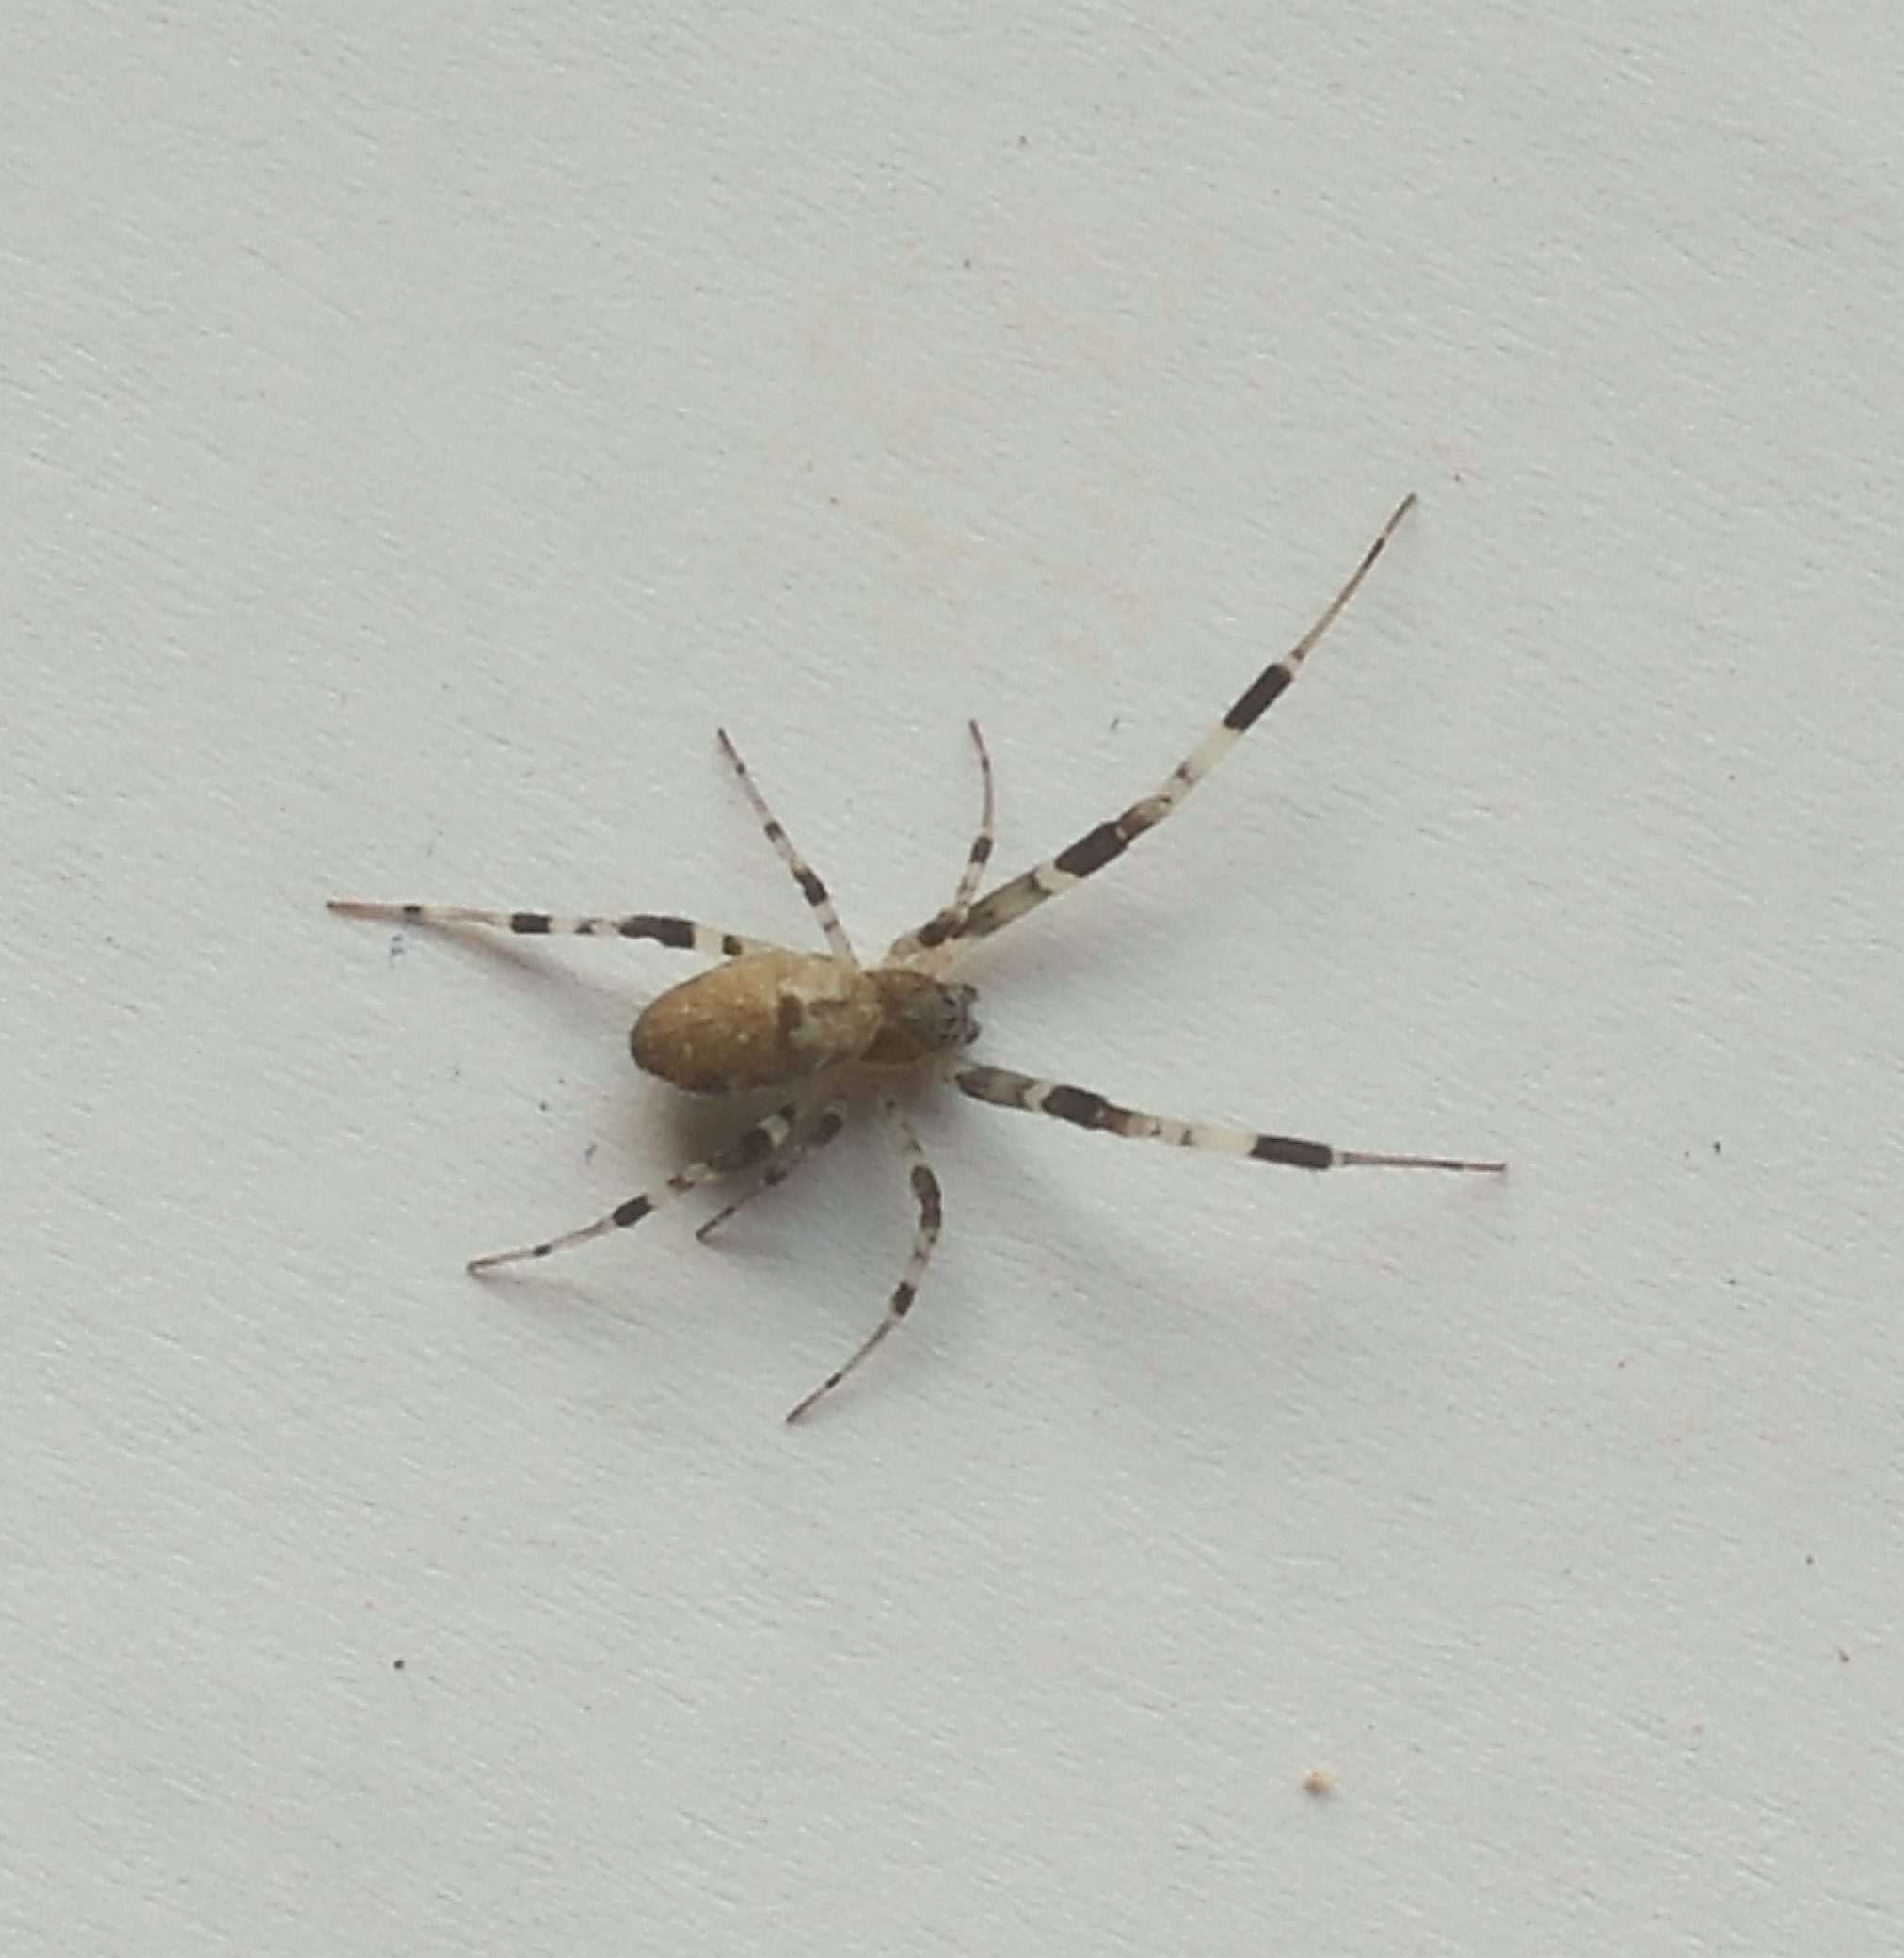 Picture of Zosis geniculata (Grey House Spider) - Dorsal